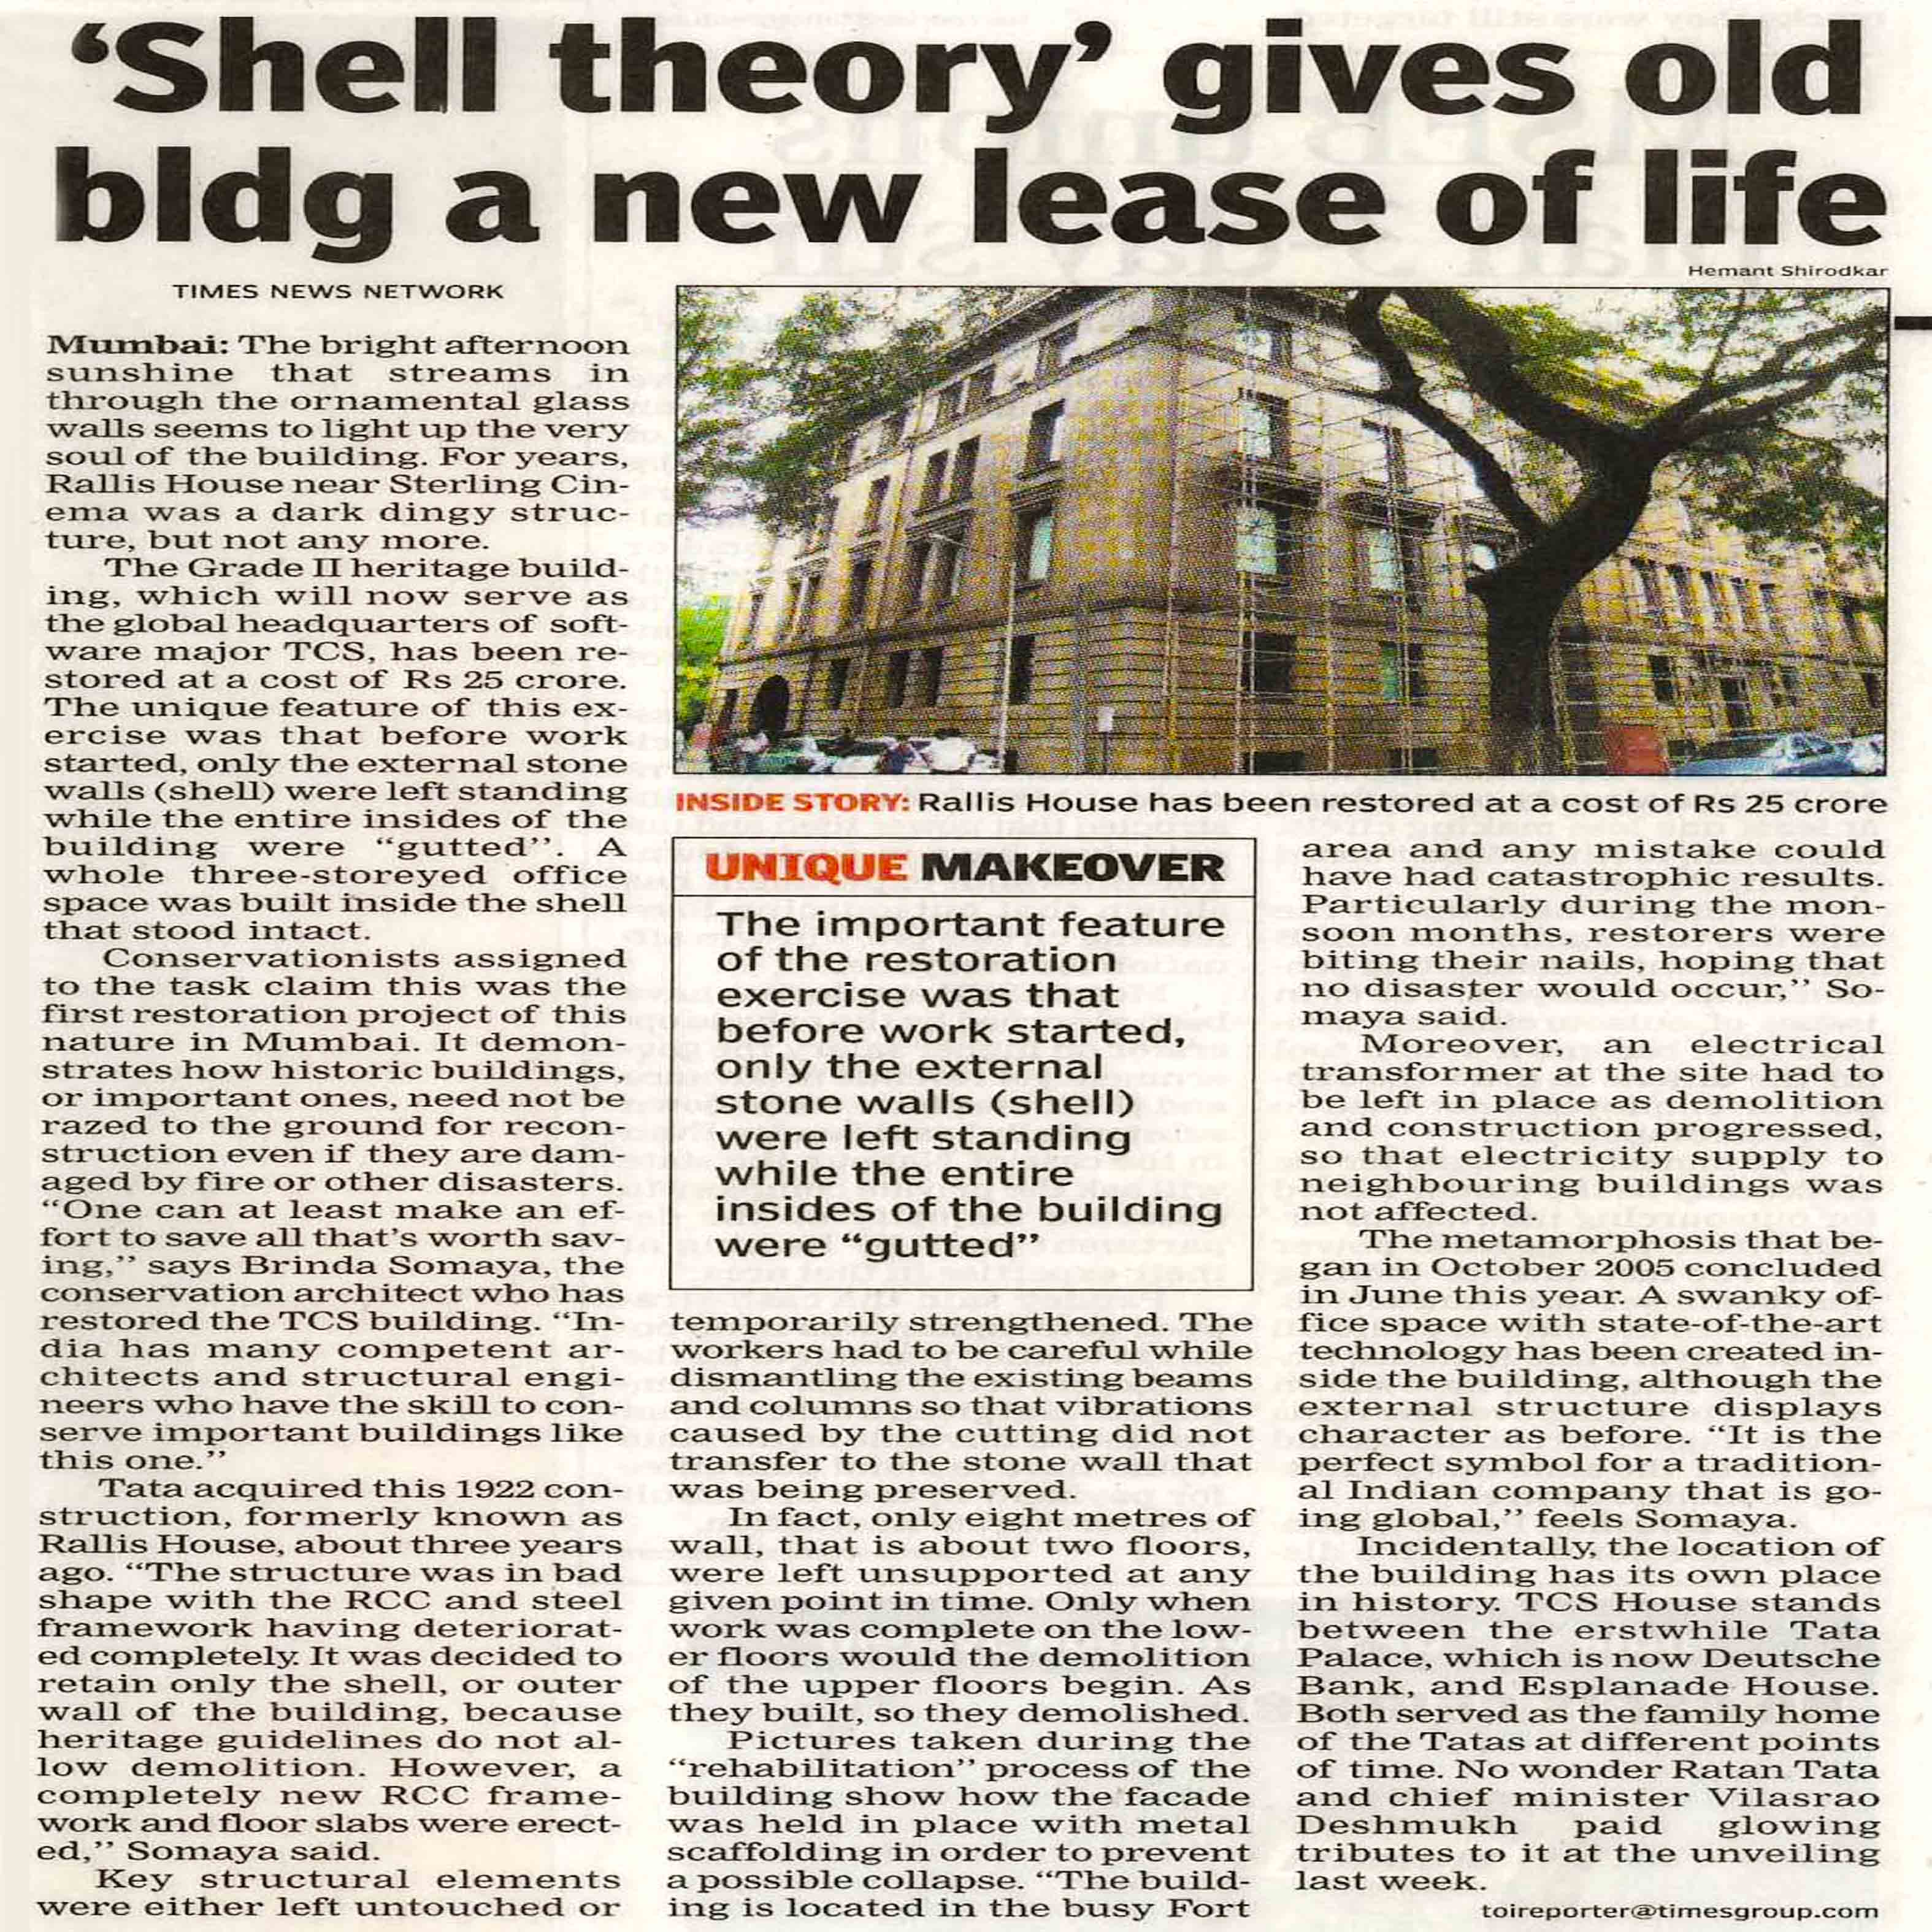 The Times of India - 'Shell theory' gives old bldg a new lease of life